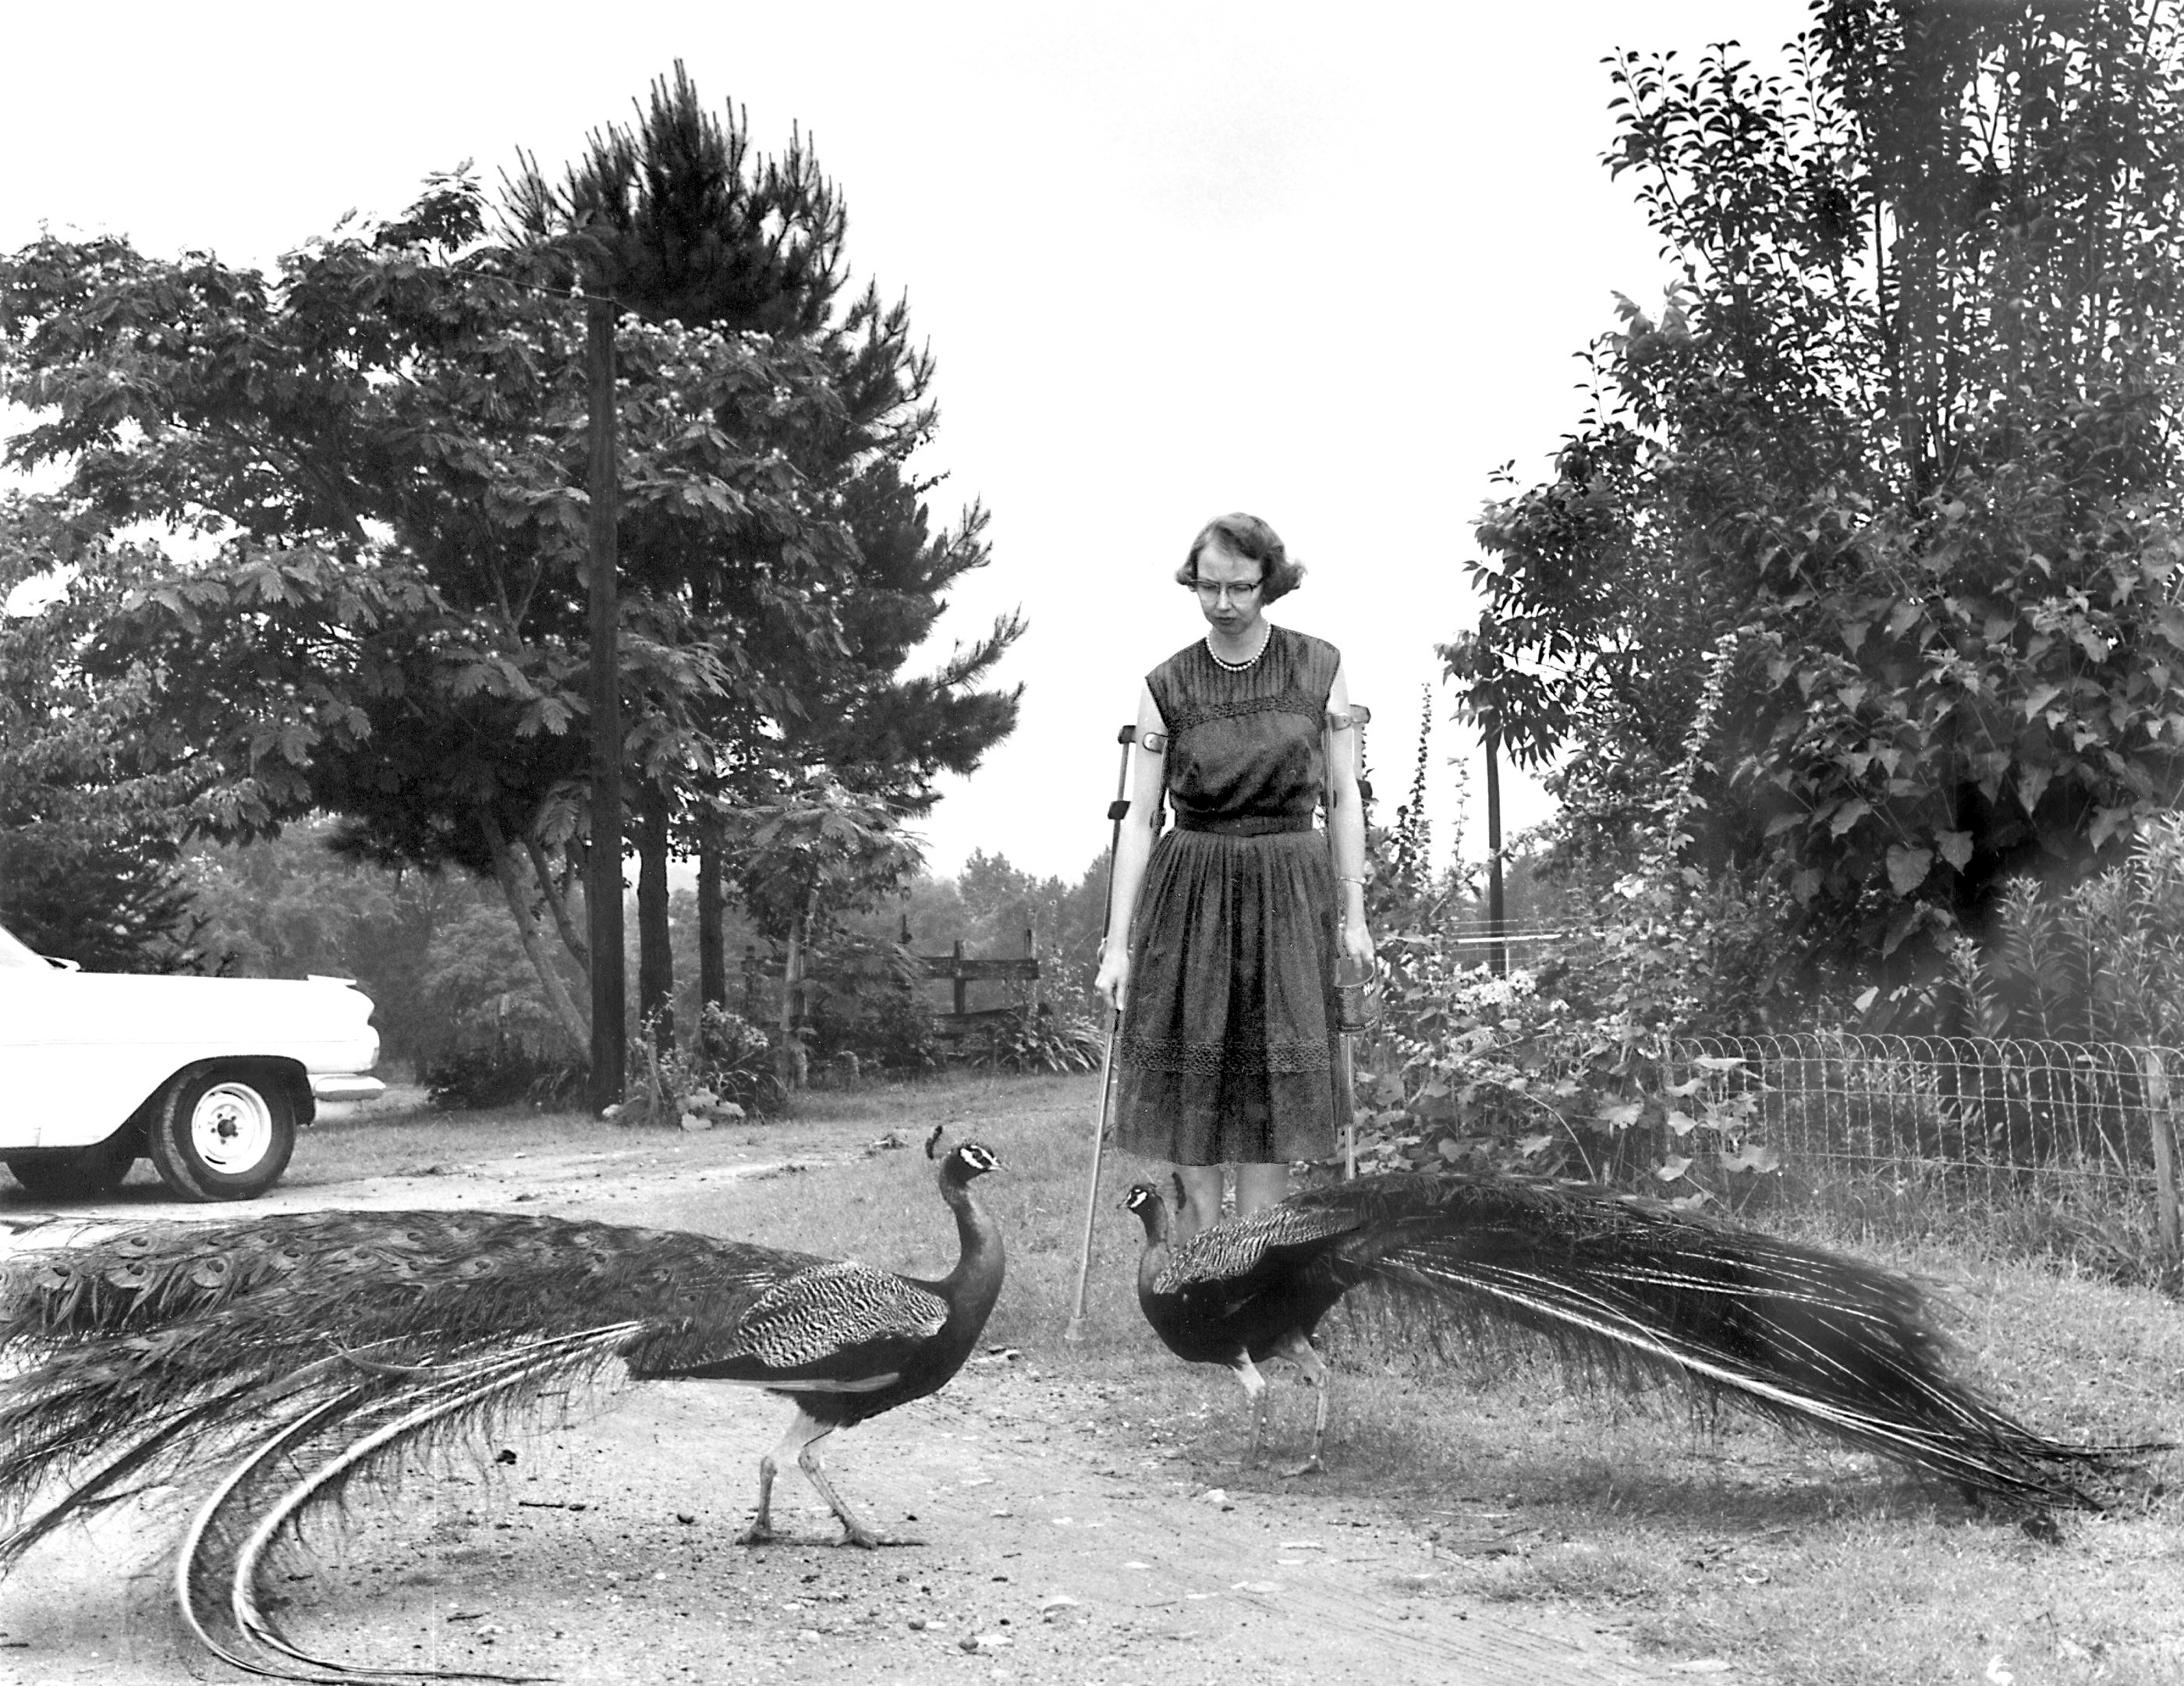 A Road Trip to Flannery O'Connor's Farm